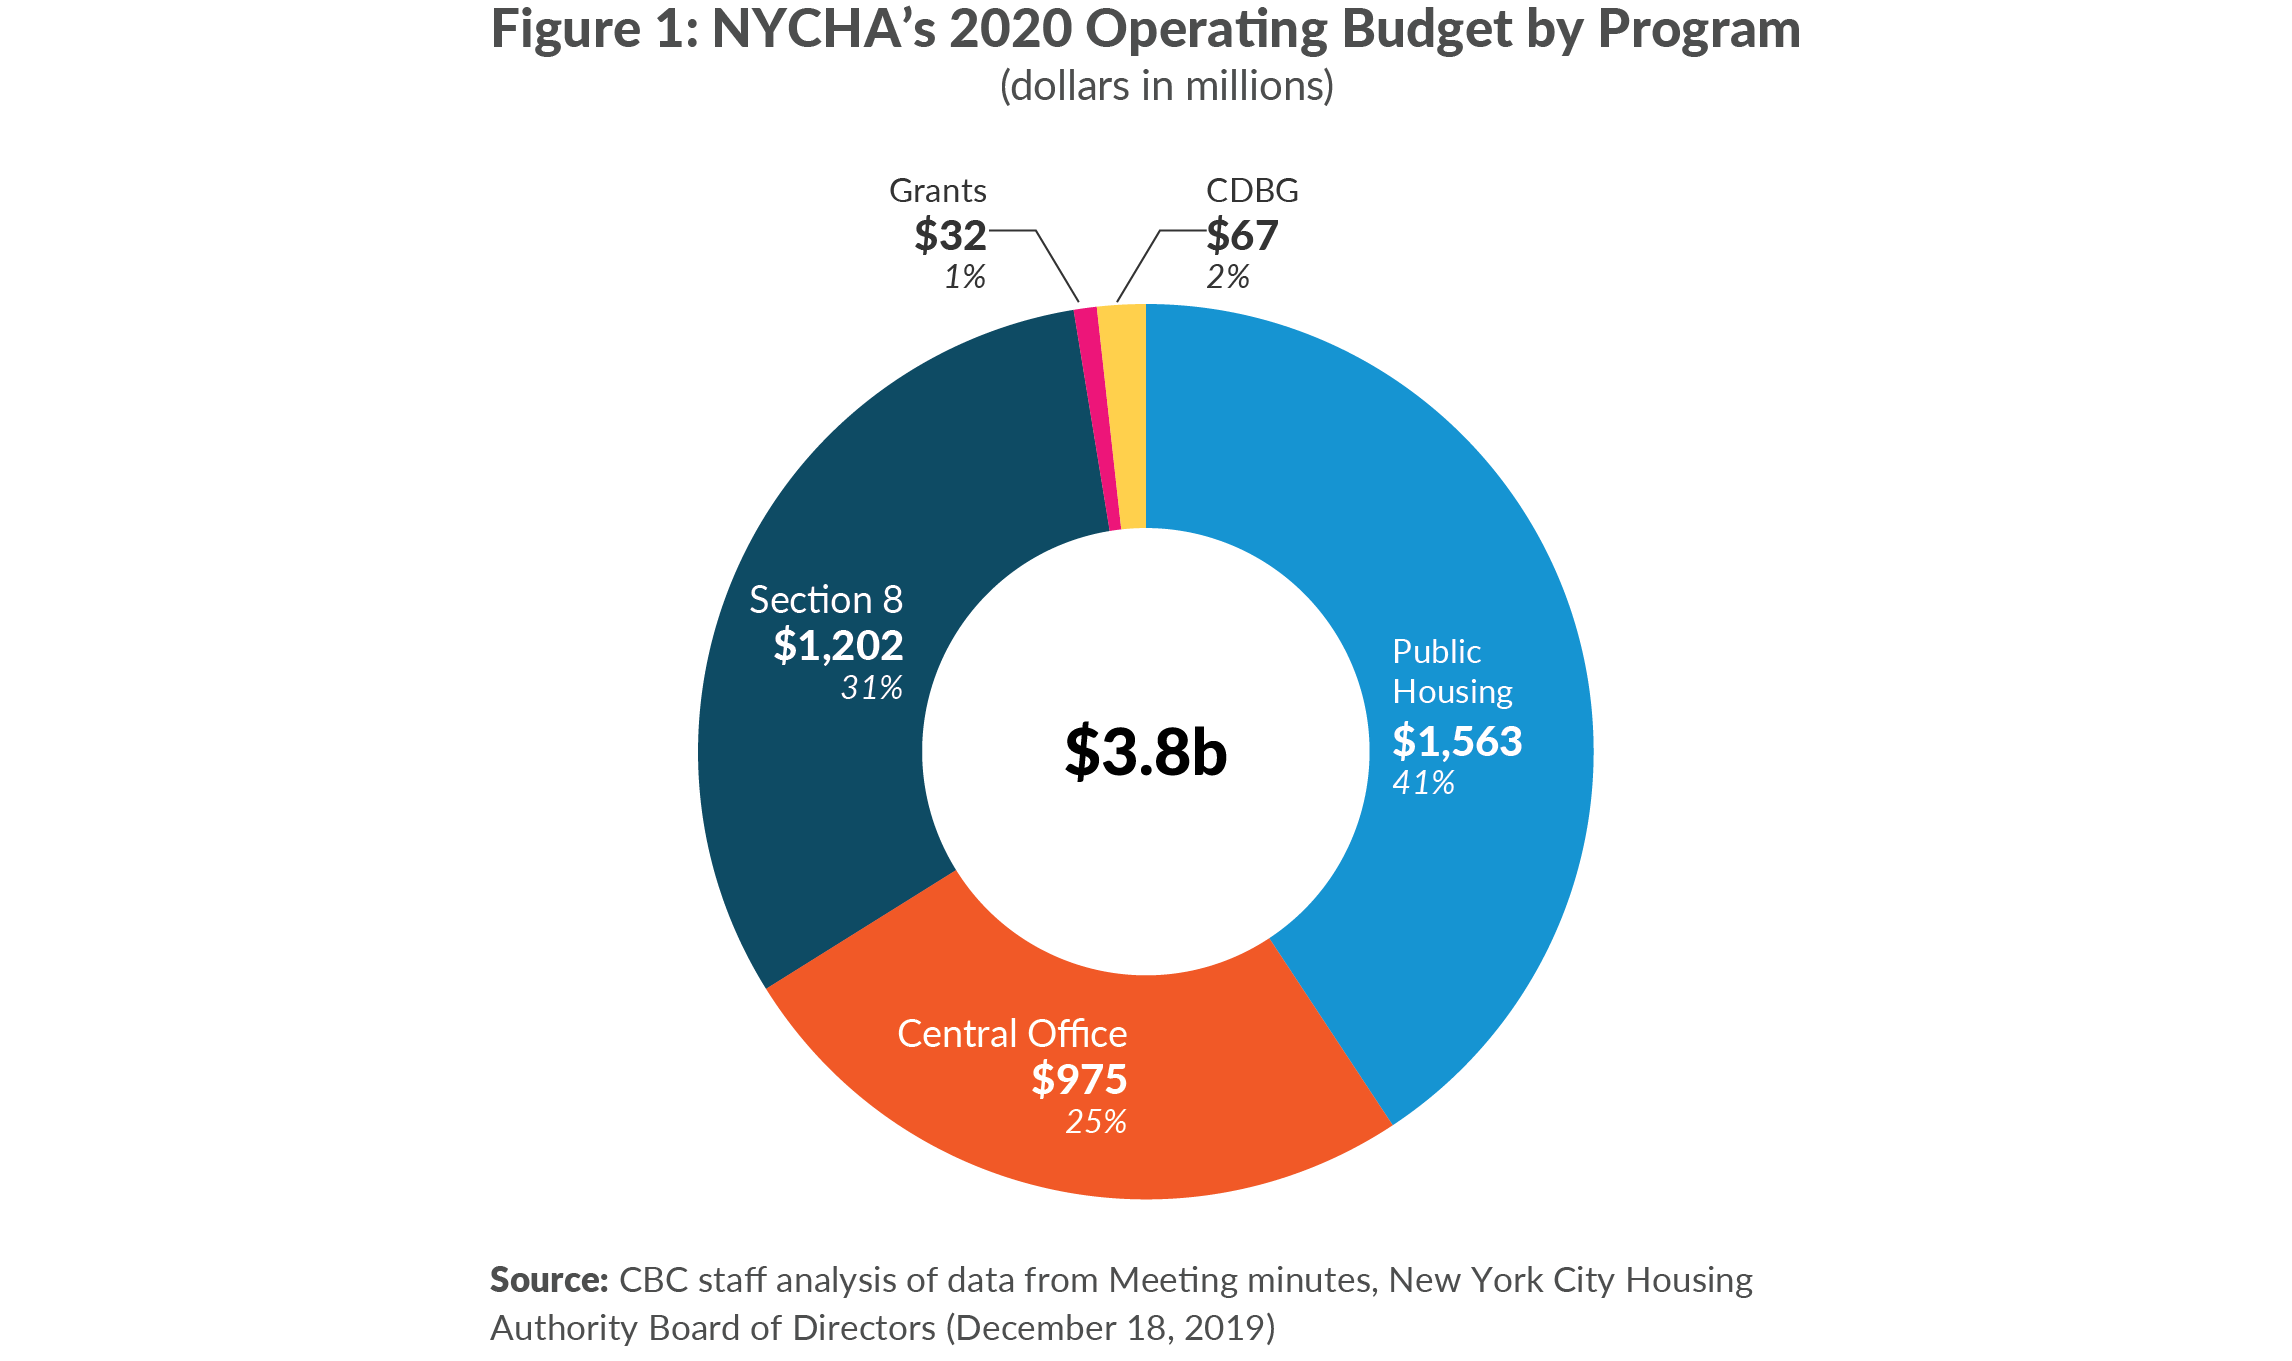 Figure 1. NYCHA's 2020 Operating Budget by Program (dollars in millions)